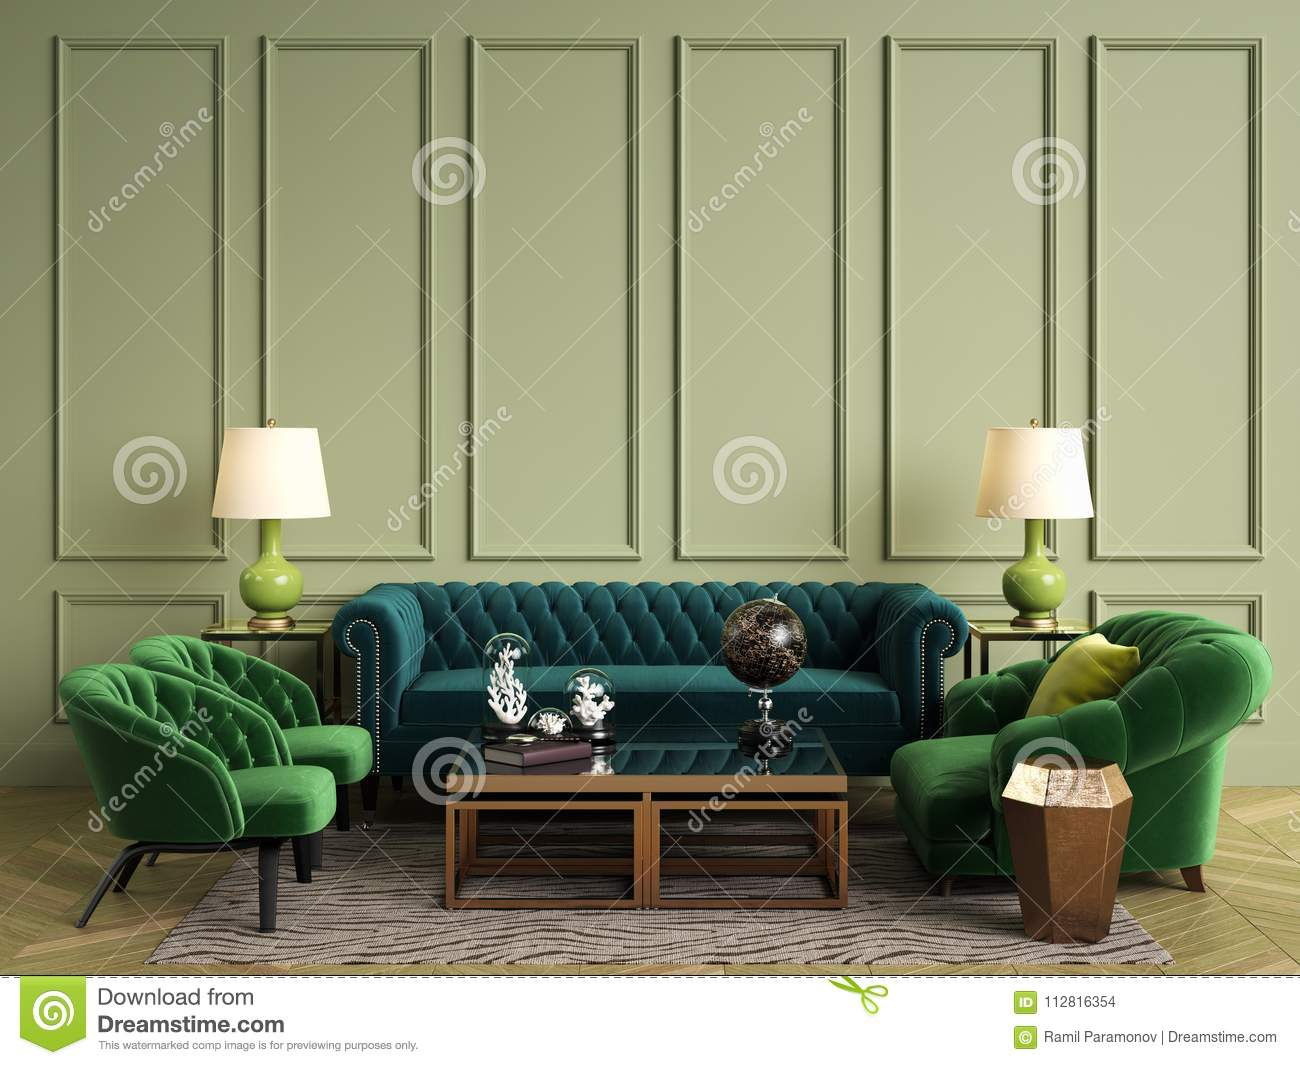 Classic interior in green colors sofachairssidetables with lampstable with decor olive walls with mouldings floor parquet herringbonerug with pattern